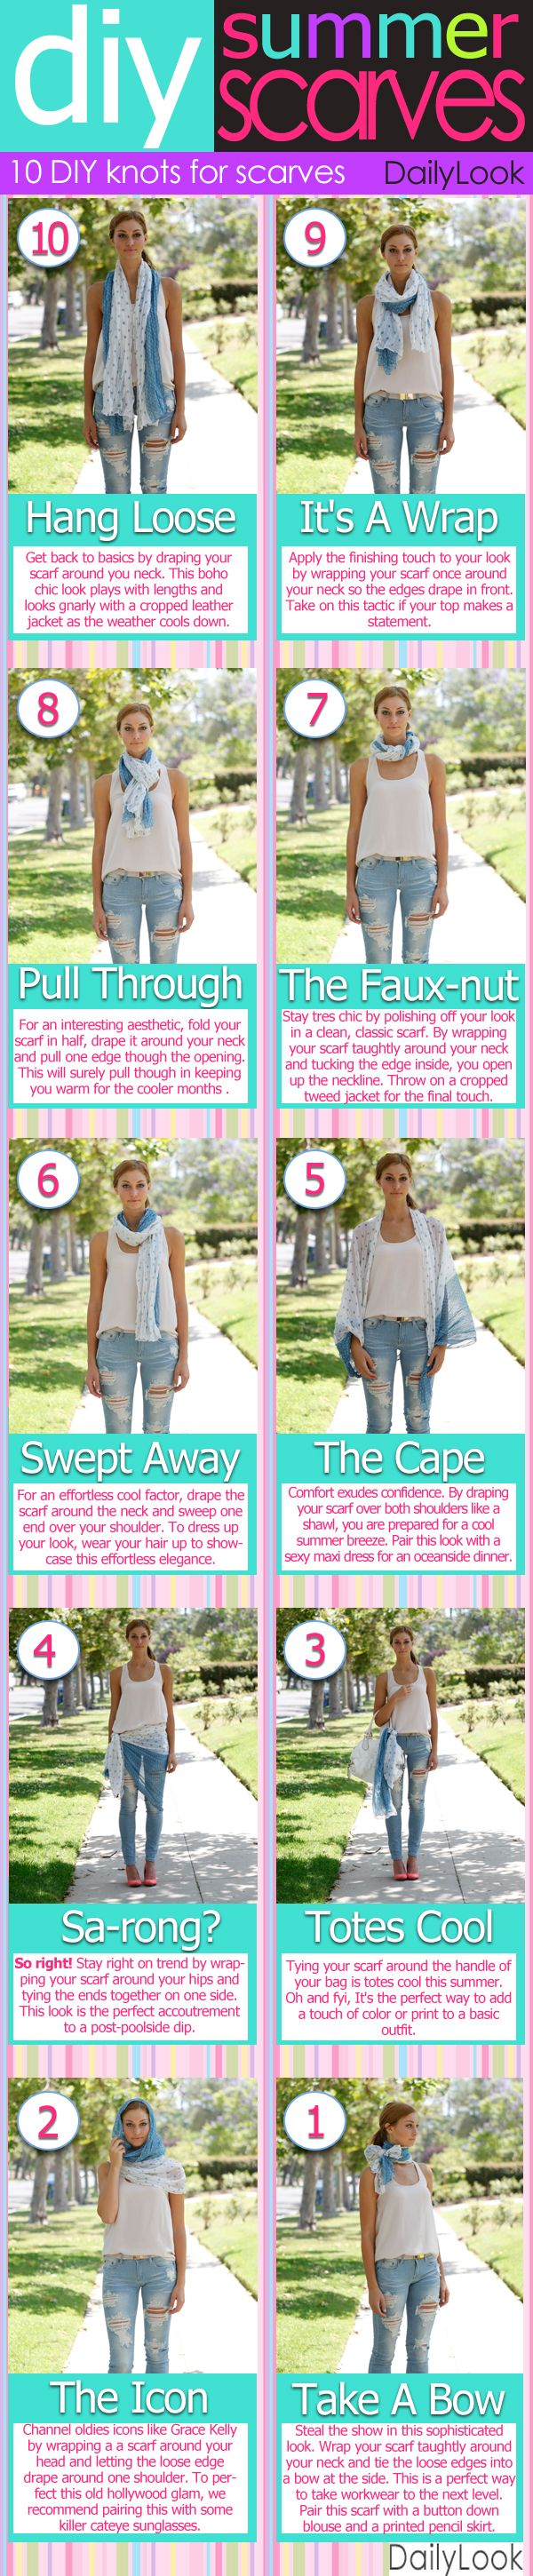 10 Ways to Wear a Summer Scarf on DailyLook. Click the image link to shop the scarf! @dailylook #dailylook #dailylooksugarandspice